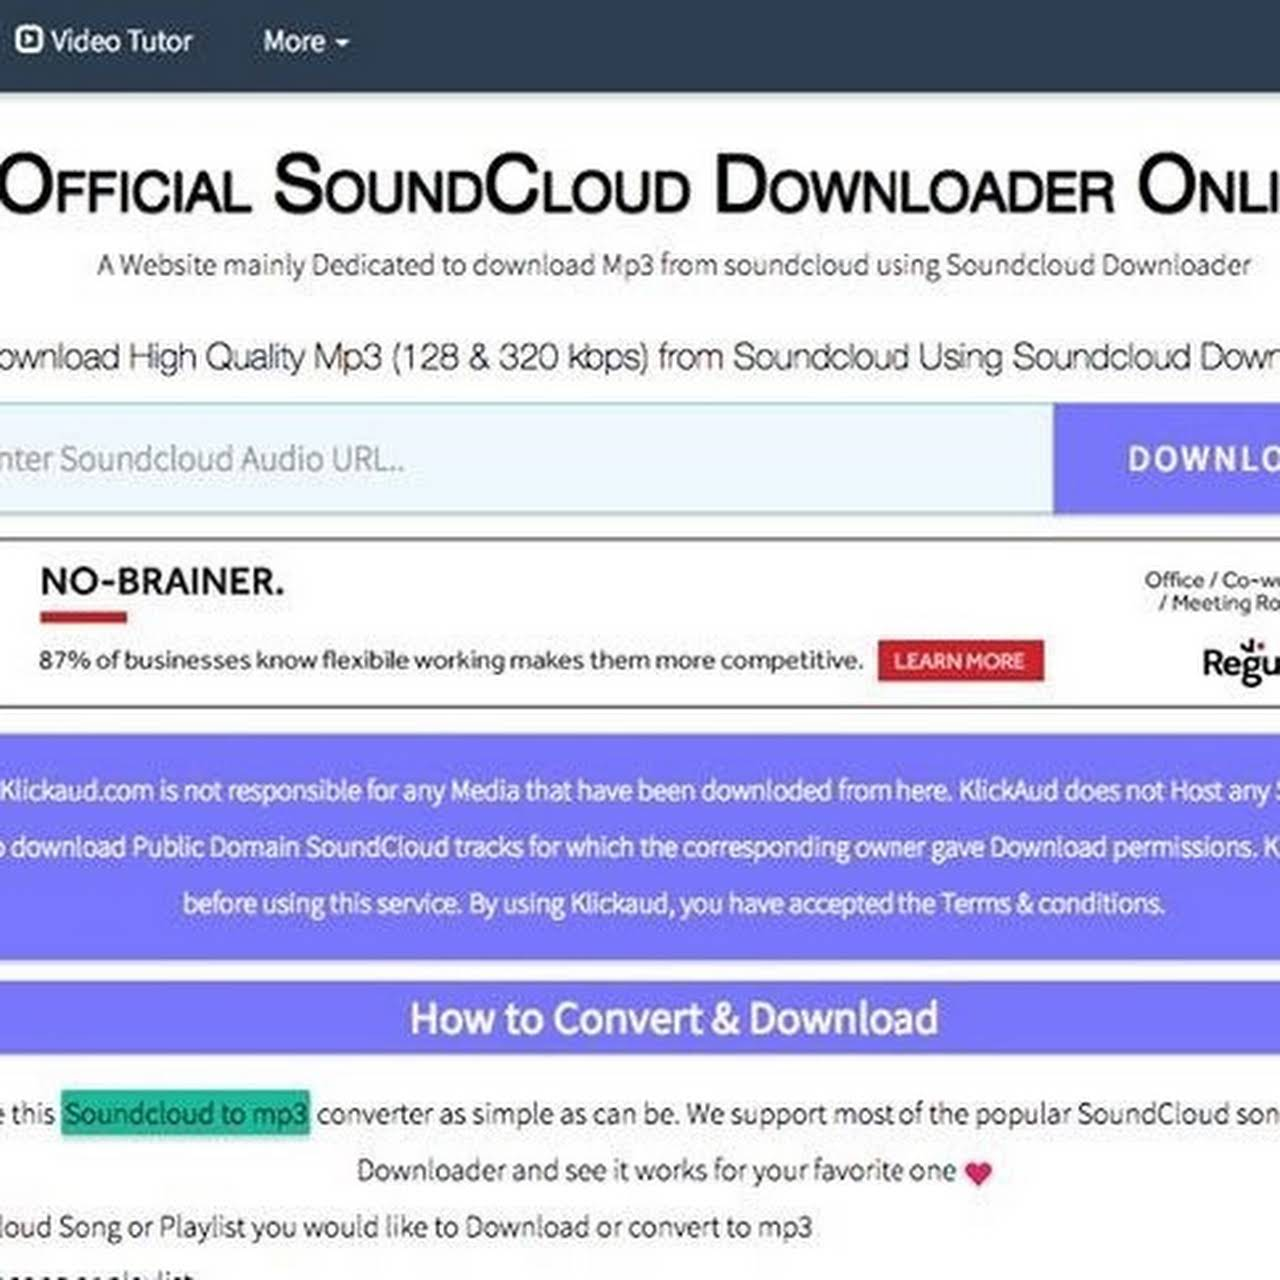 SoundCloud Downloader- KlickAud - A simple Online Tool for